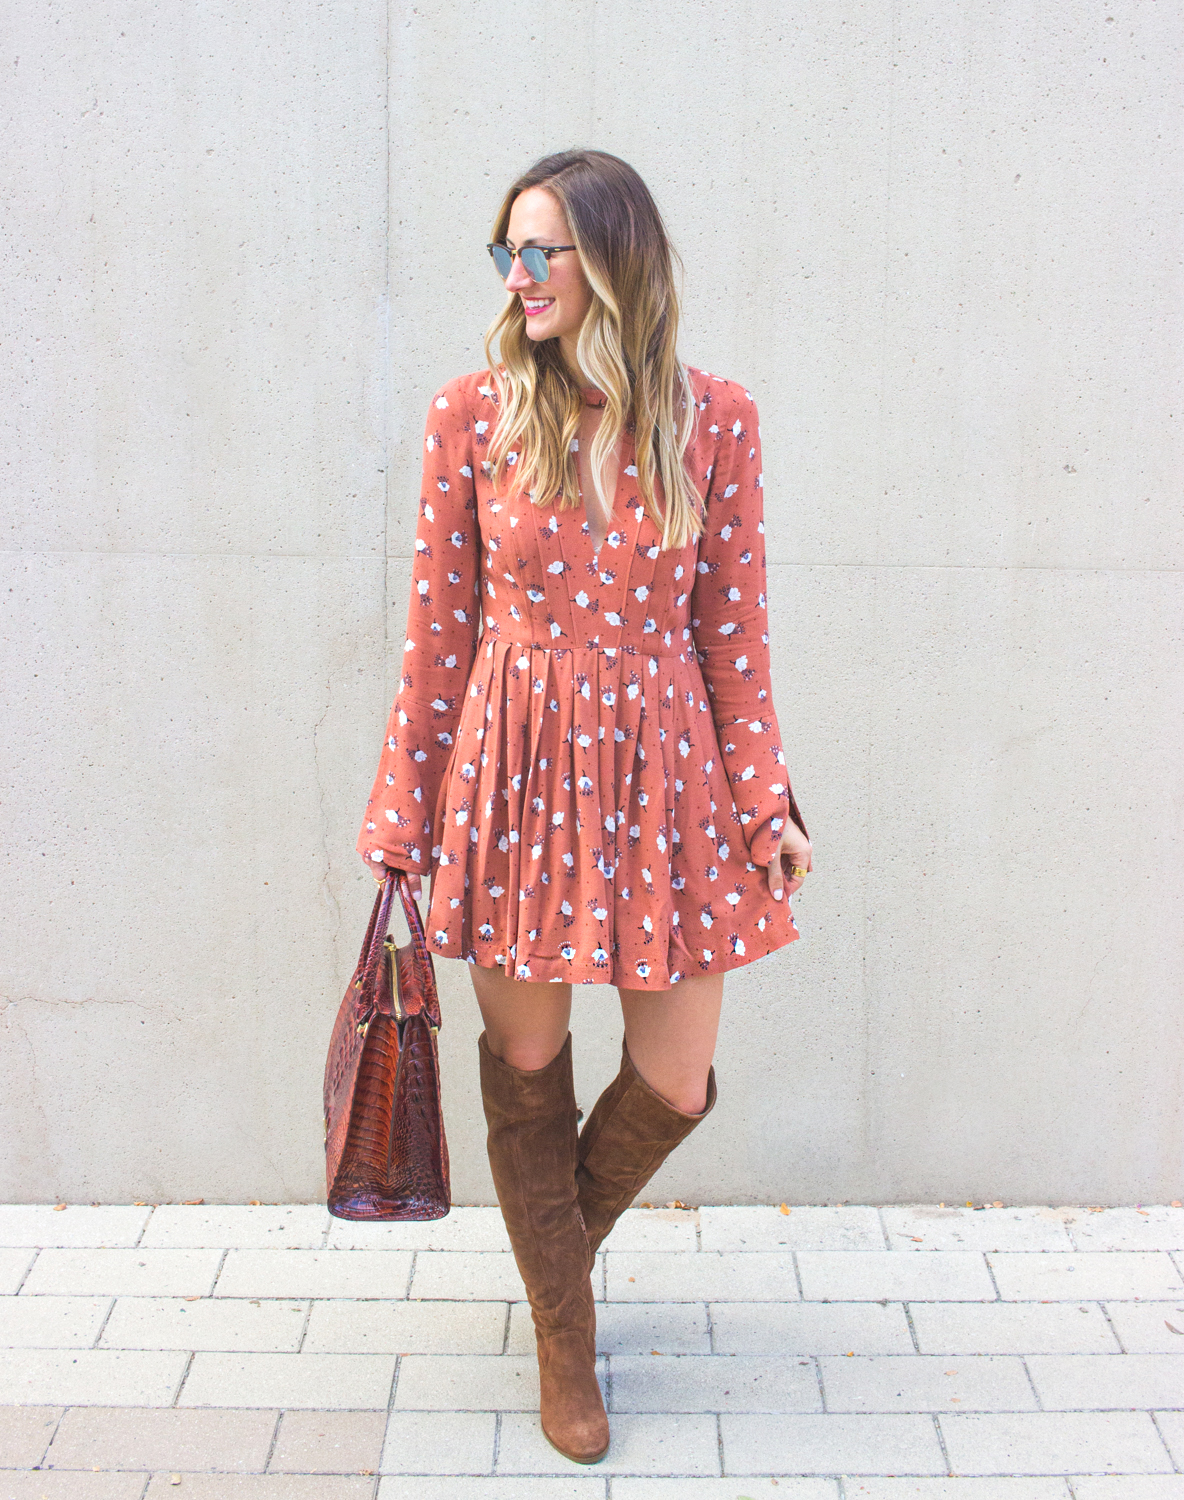 livvyland-blog-olivia-watson-fall-outfit-over-the-knee-boots-tegan-mini-dress-steve-madden-eternul-brahmin-priscilla-satchel-2